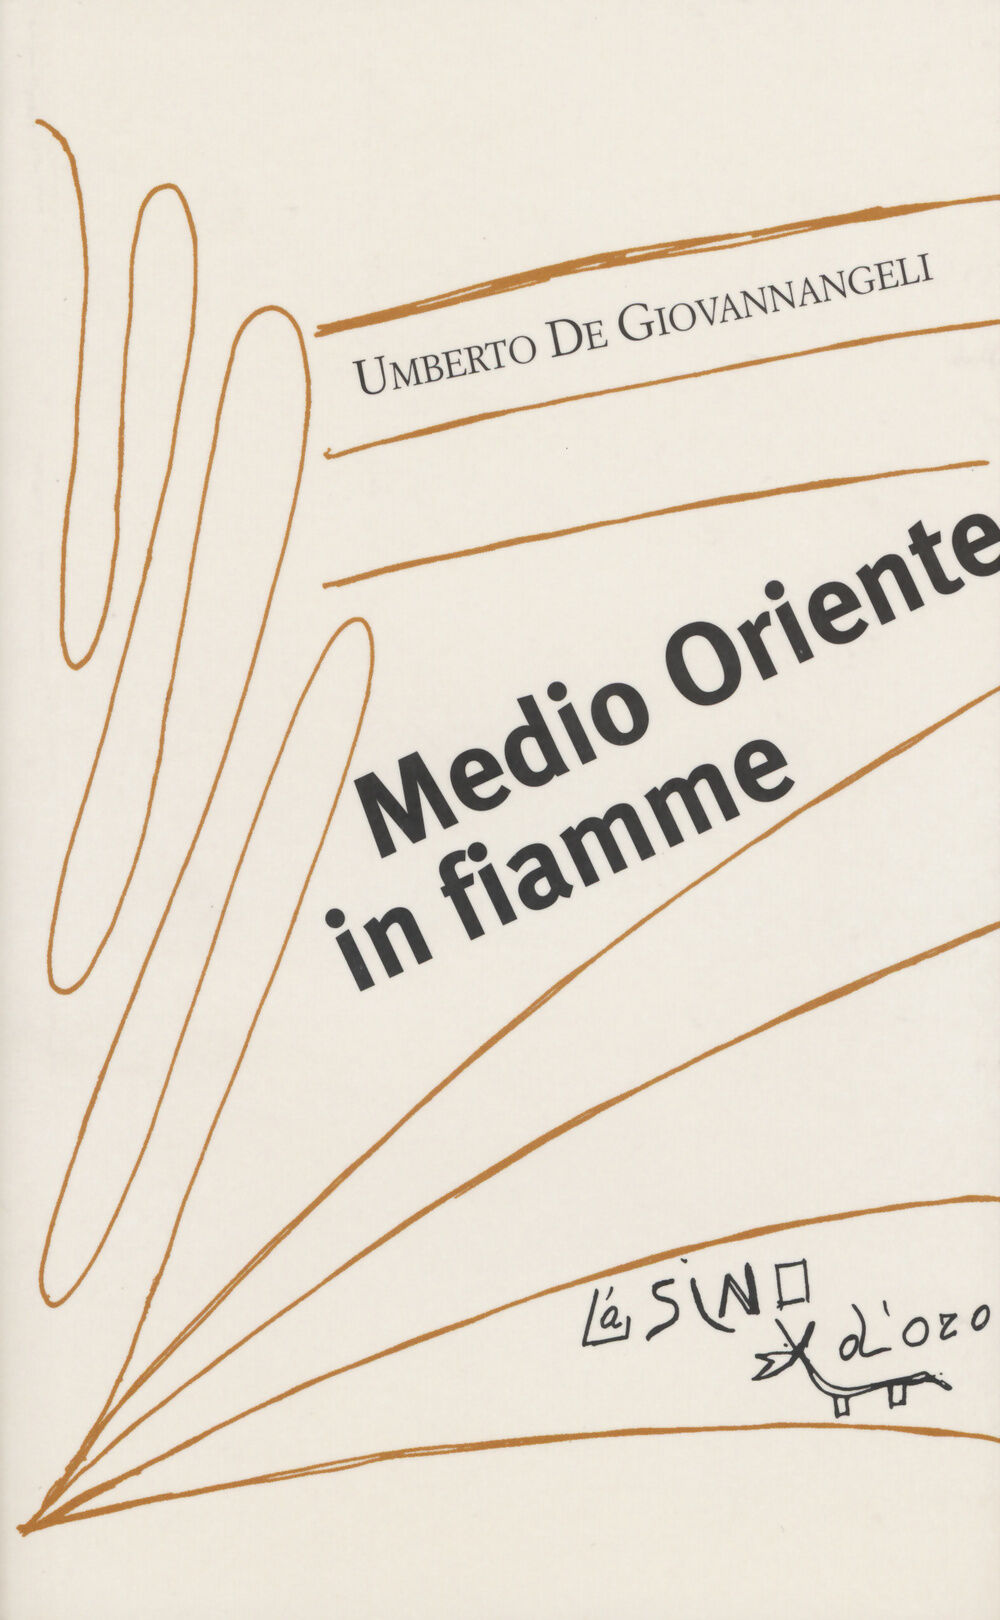 Medio Oriente in fiamme